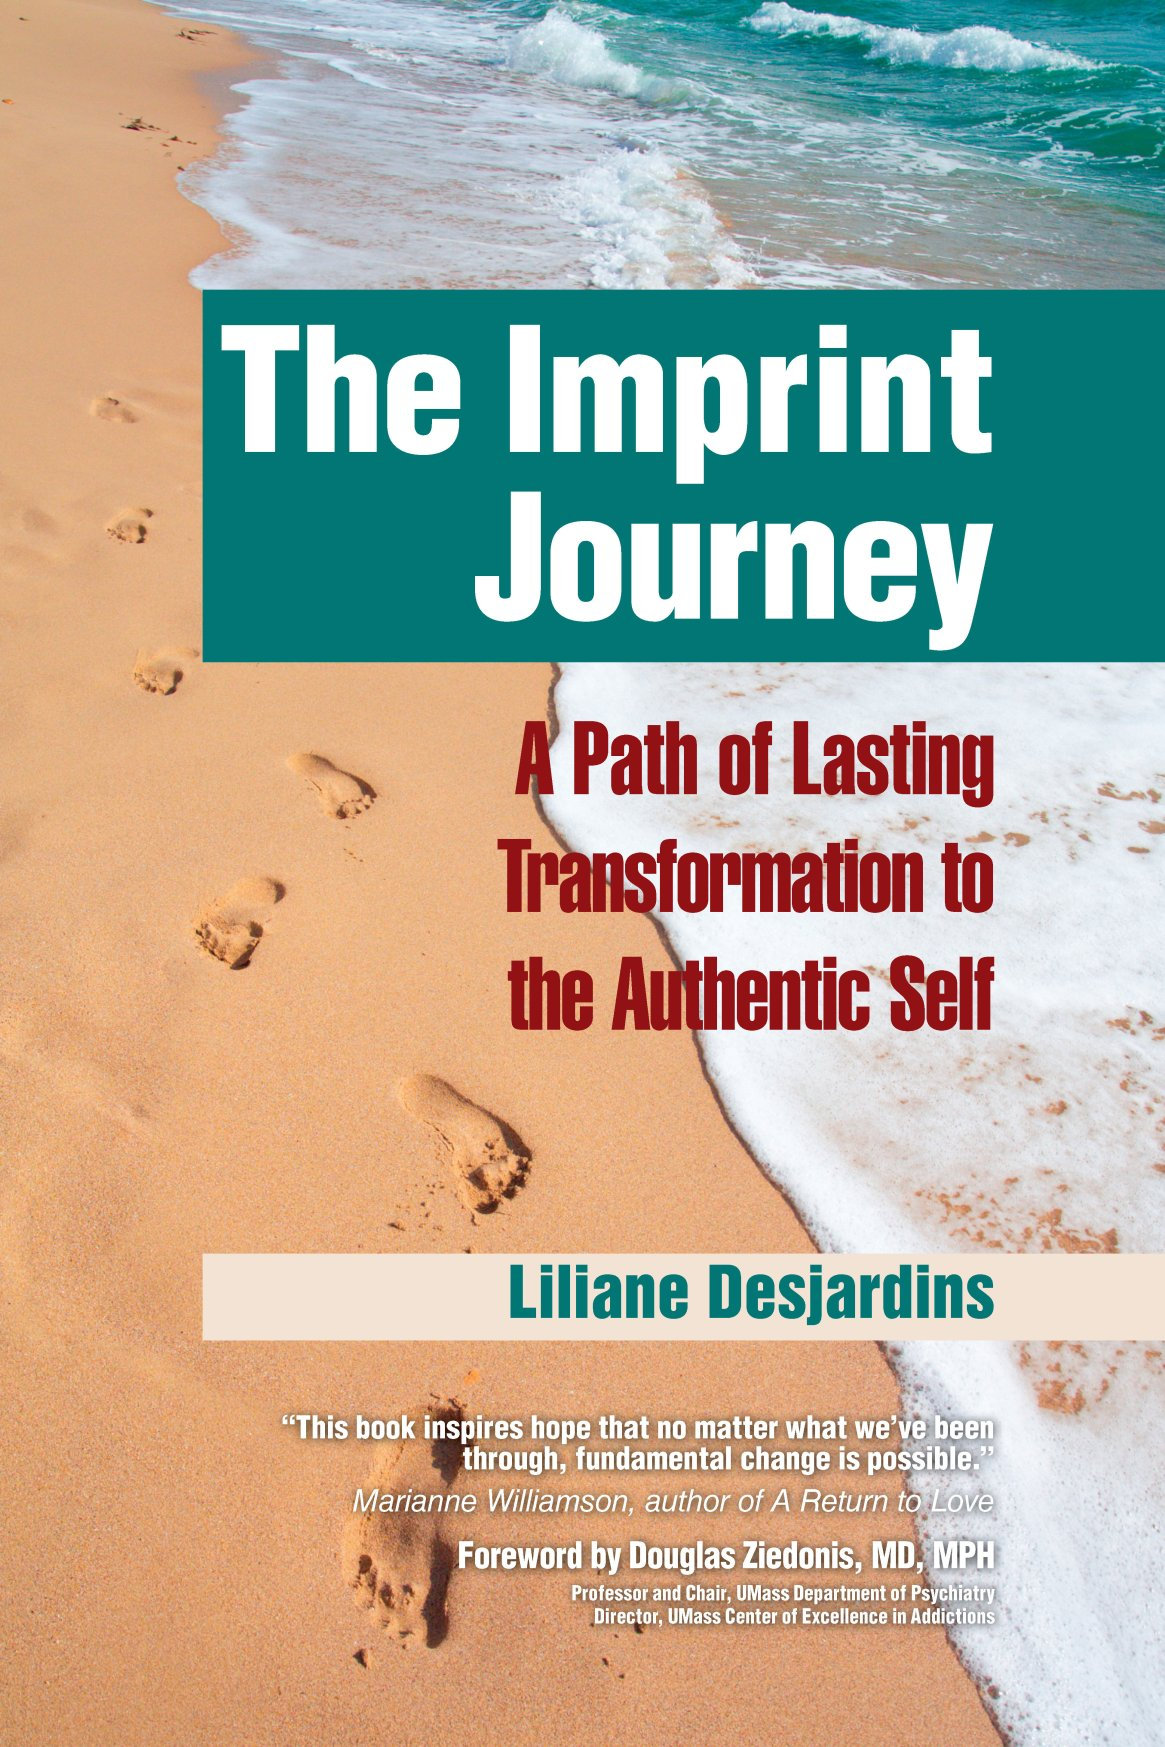 The Imprint Journey: A Path of Lasting Transformation Into Your Authentic Self 978-1-61599-087-0